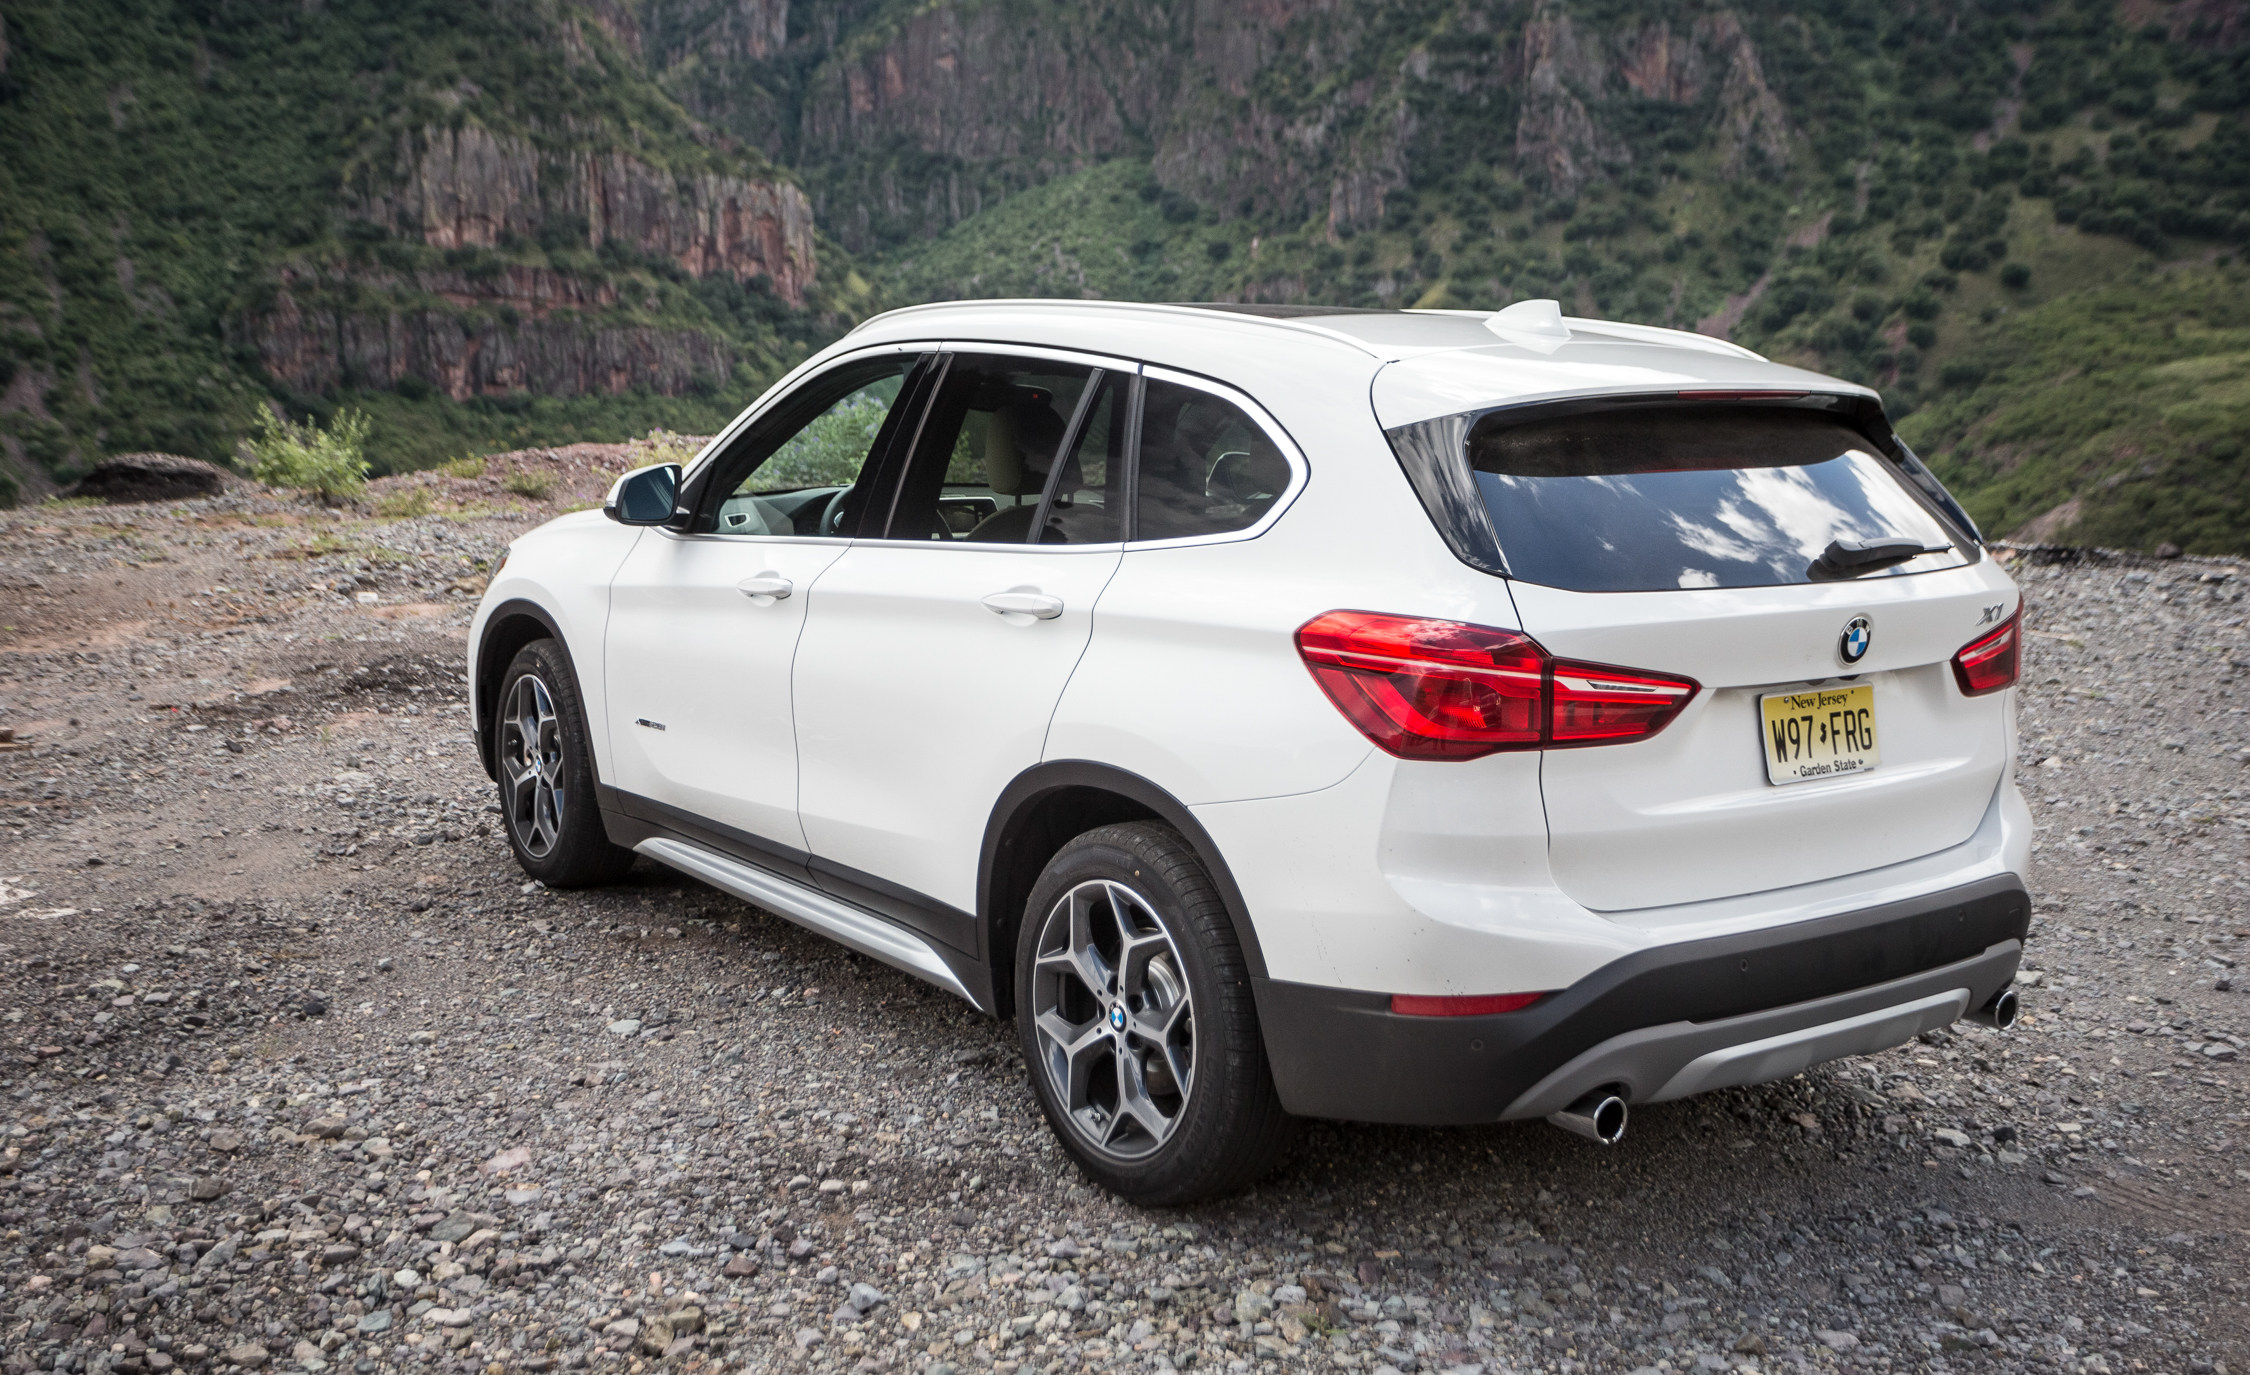 2016 BMW X1 Exterior White Metallic Side And Rear (View 31 of 36)